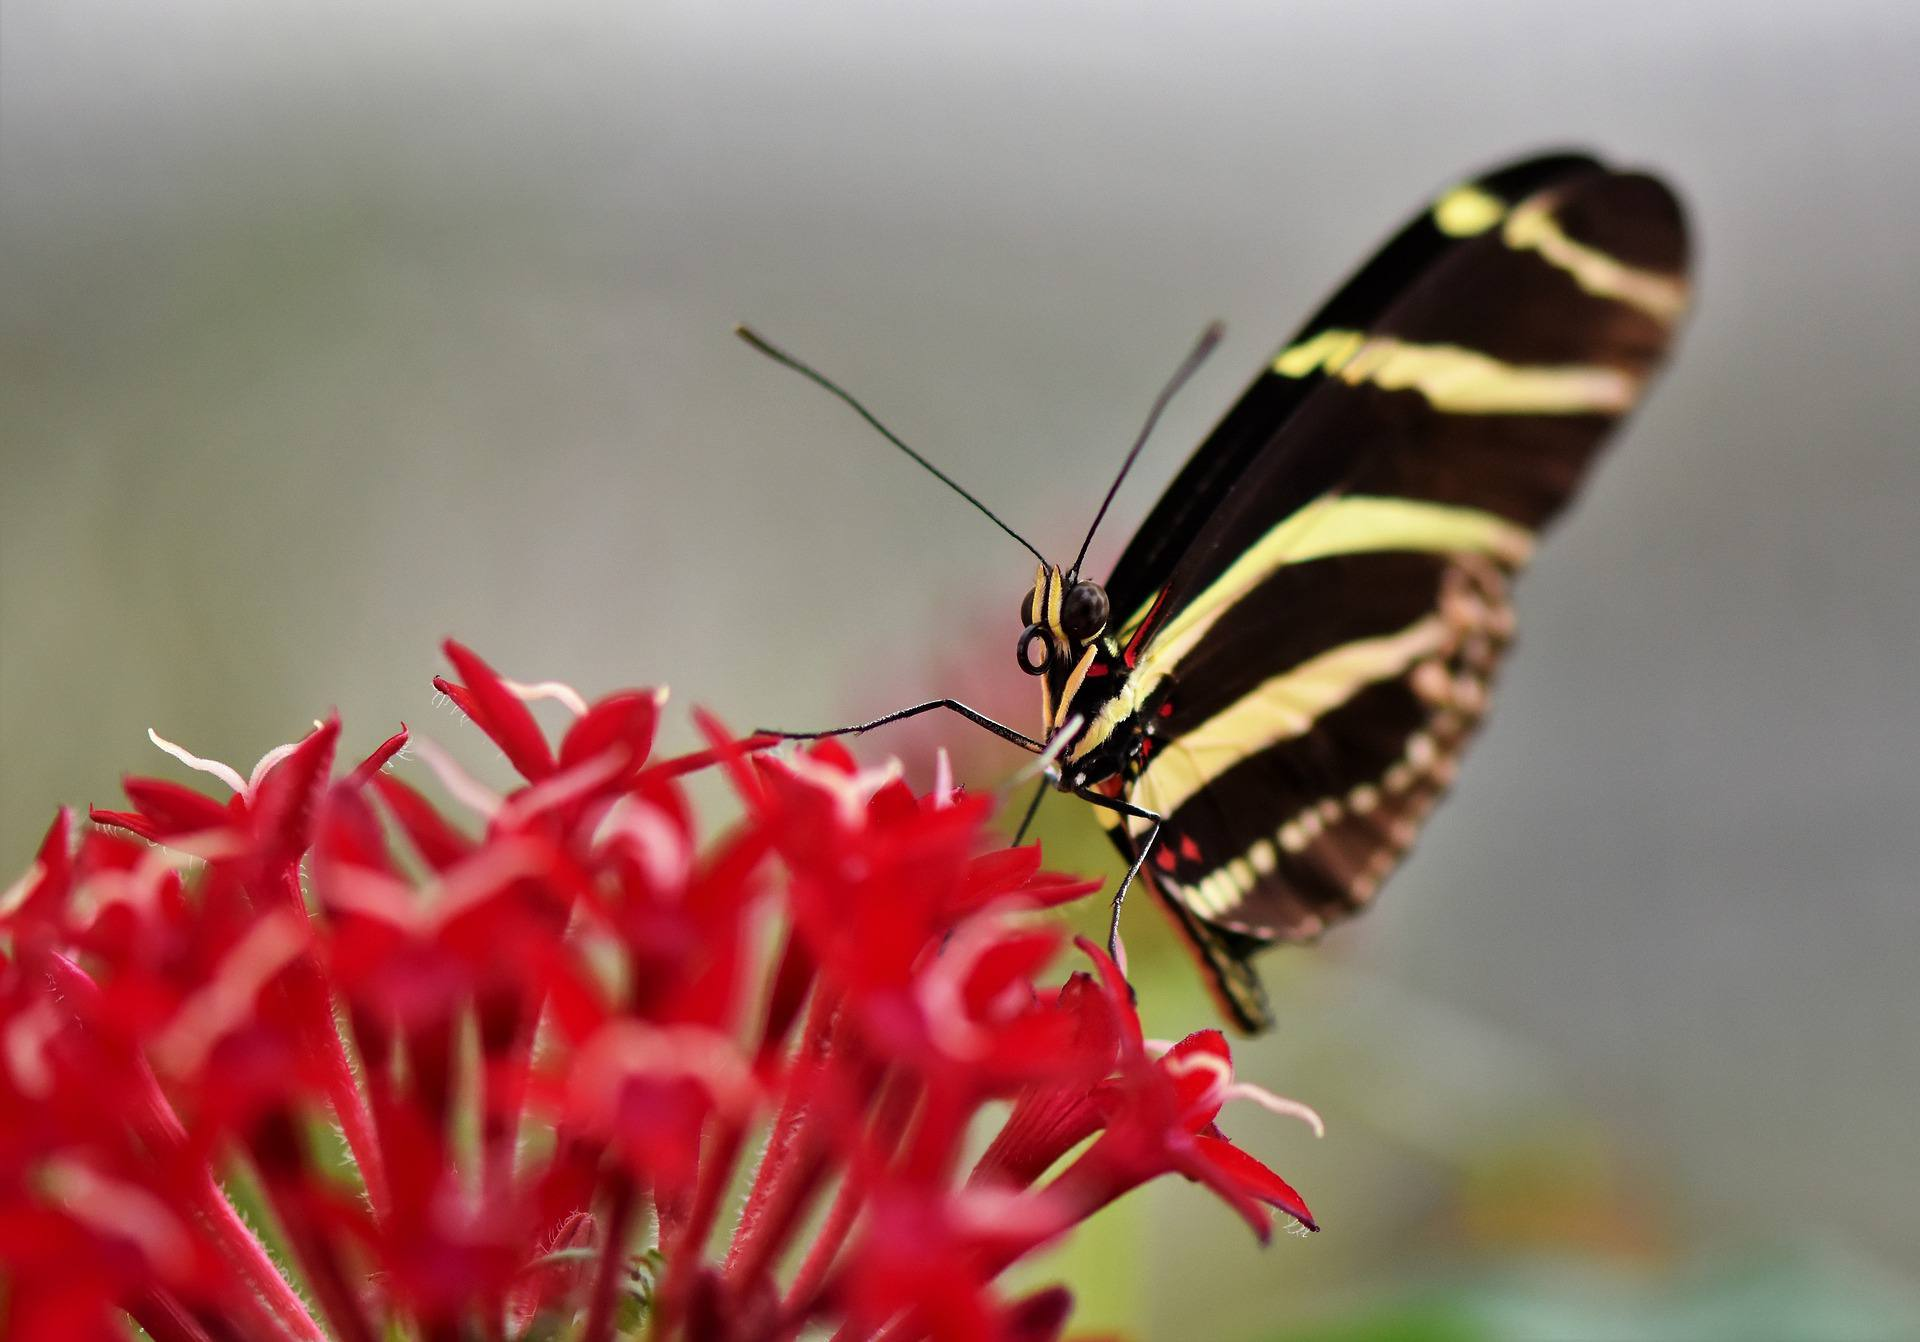 Close up of a butterfly sitting on a flower.